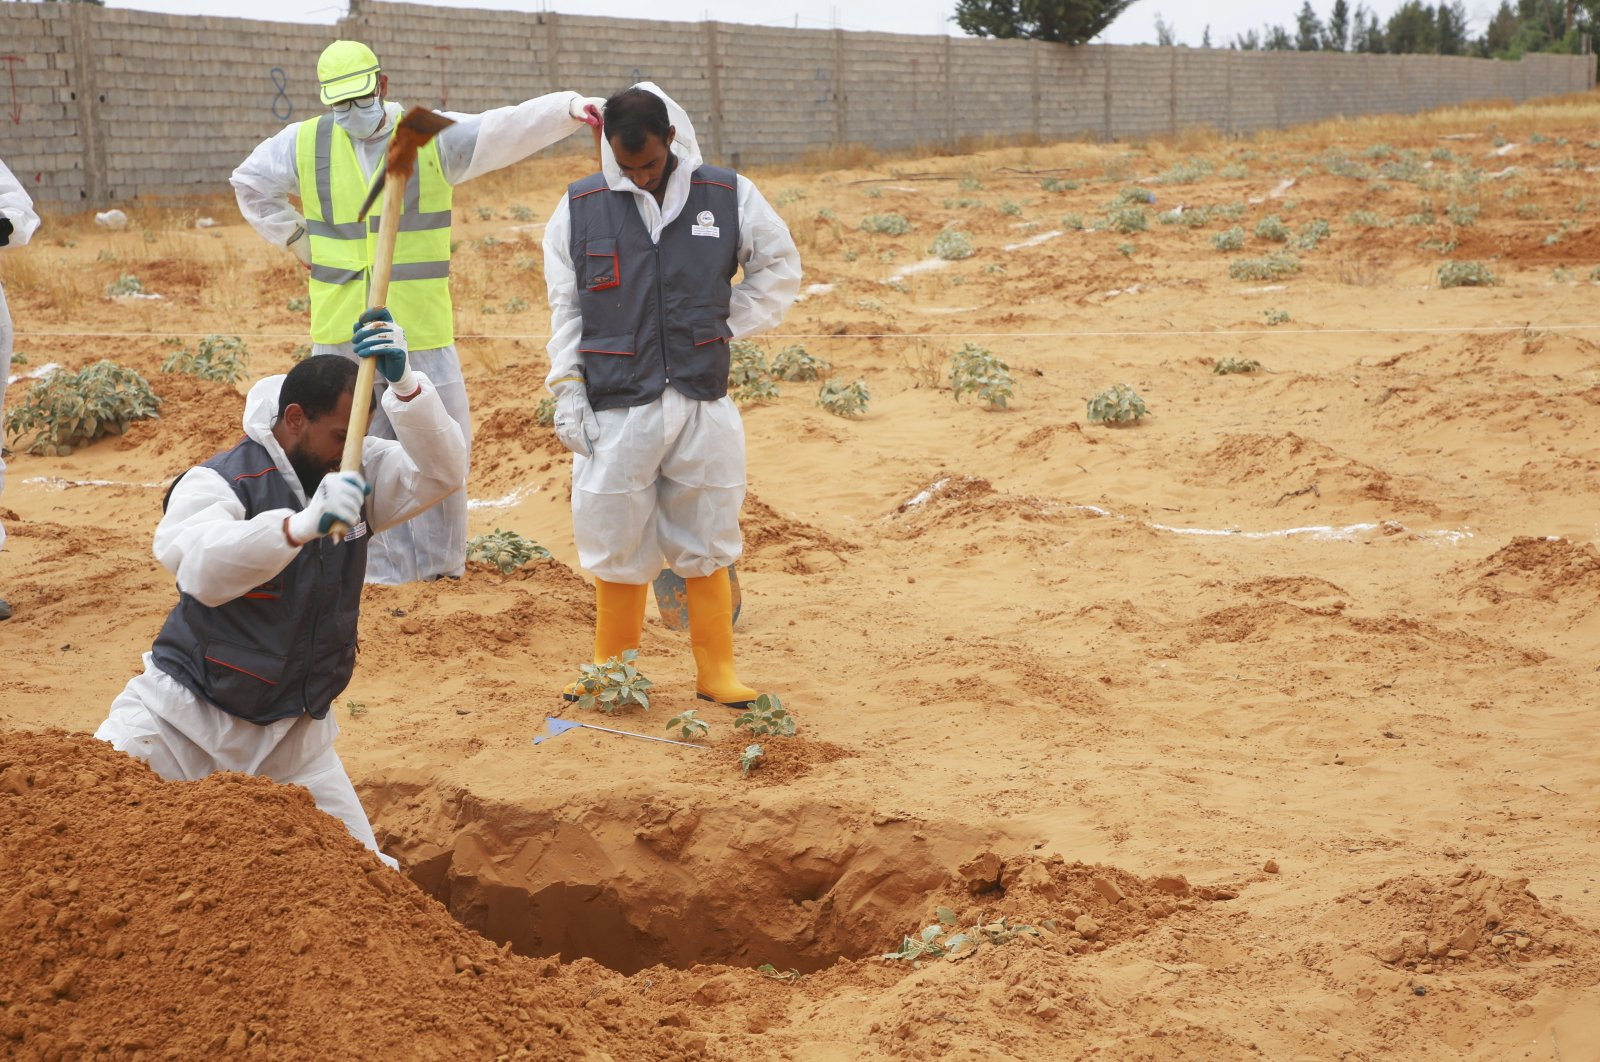 Libyan Ministry of Justice employees dig a site of a suspected mass grave in the town of Tarhuna, Libya, June 23, 2020. (AP Photo)